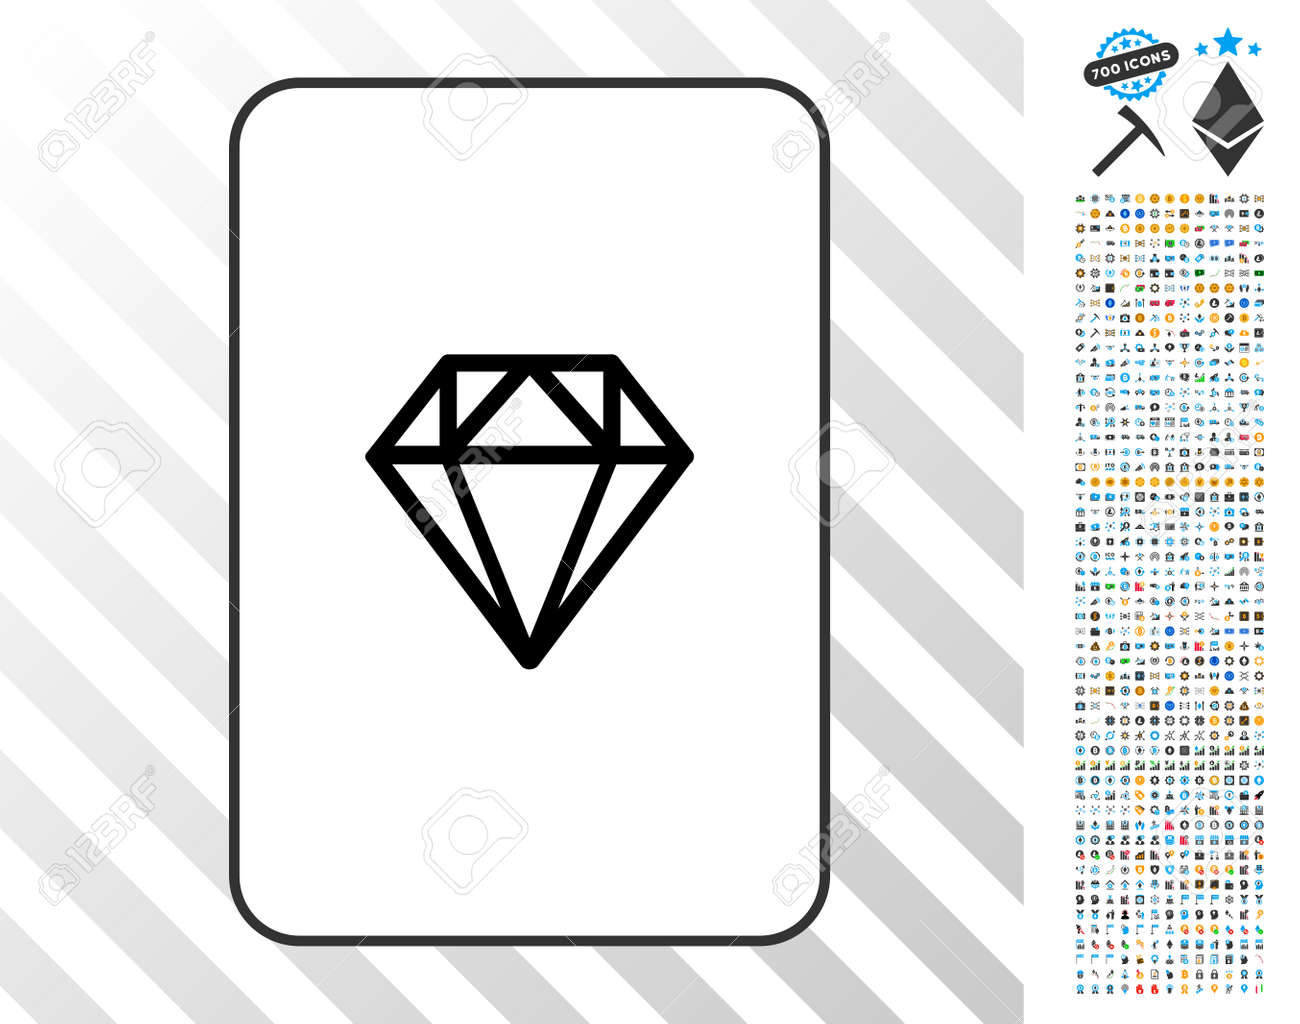 Diamond Playing Card Pictogram With 7 Hundred Bonus Bitcoin Mining Royalty Free Cliparts Vectors And Stock Illustration Image 93481800